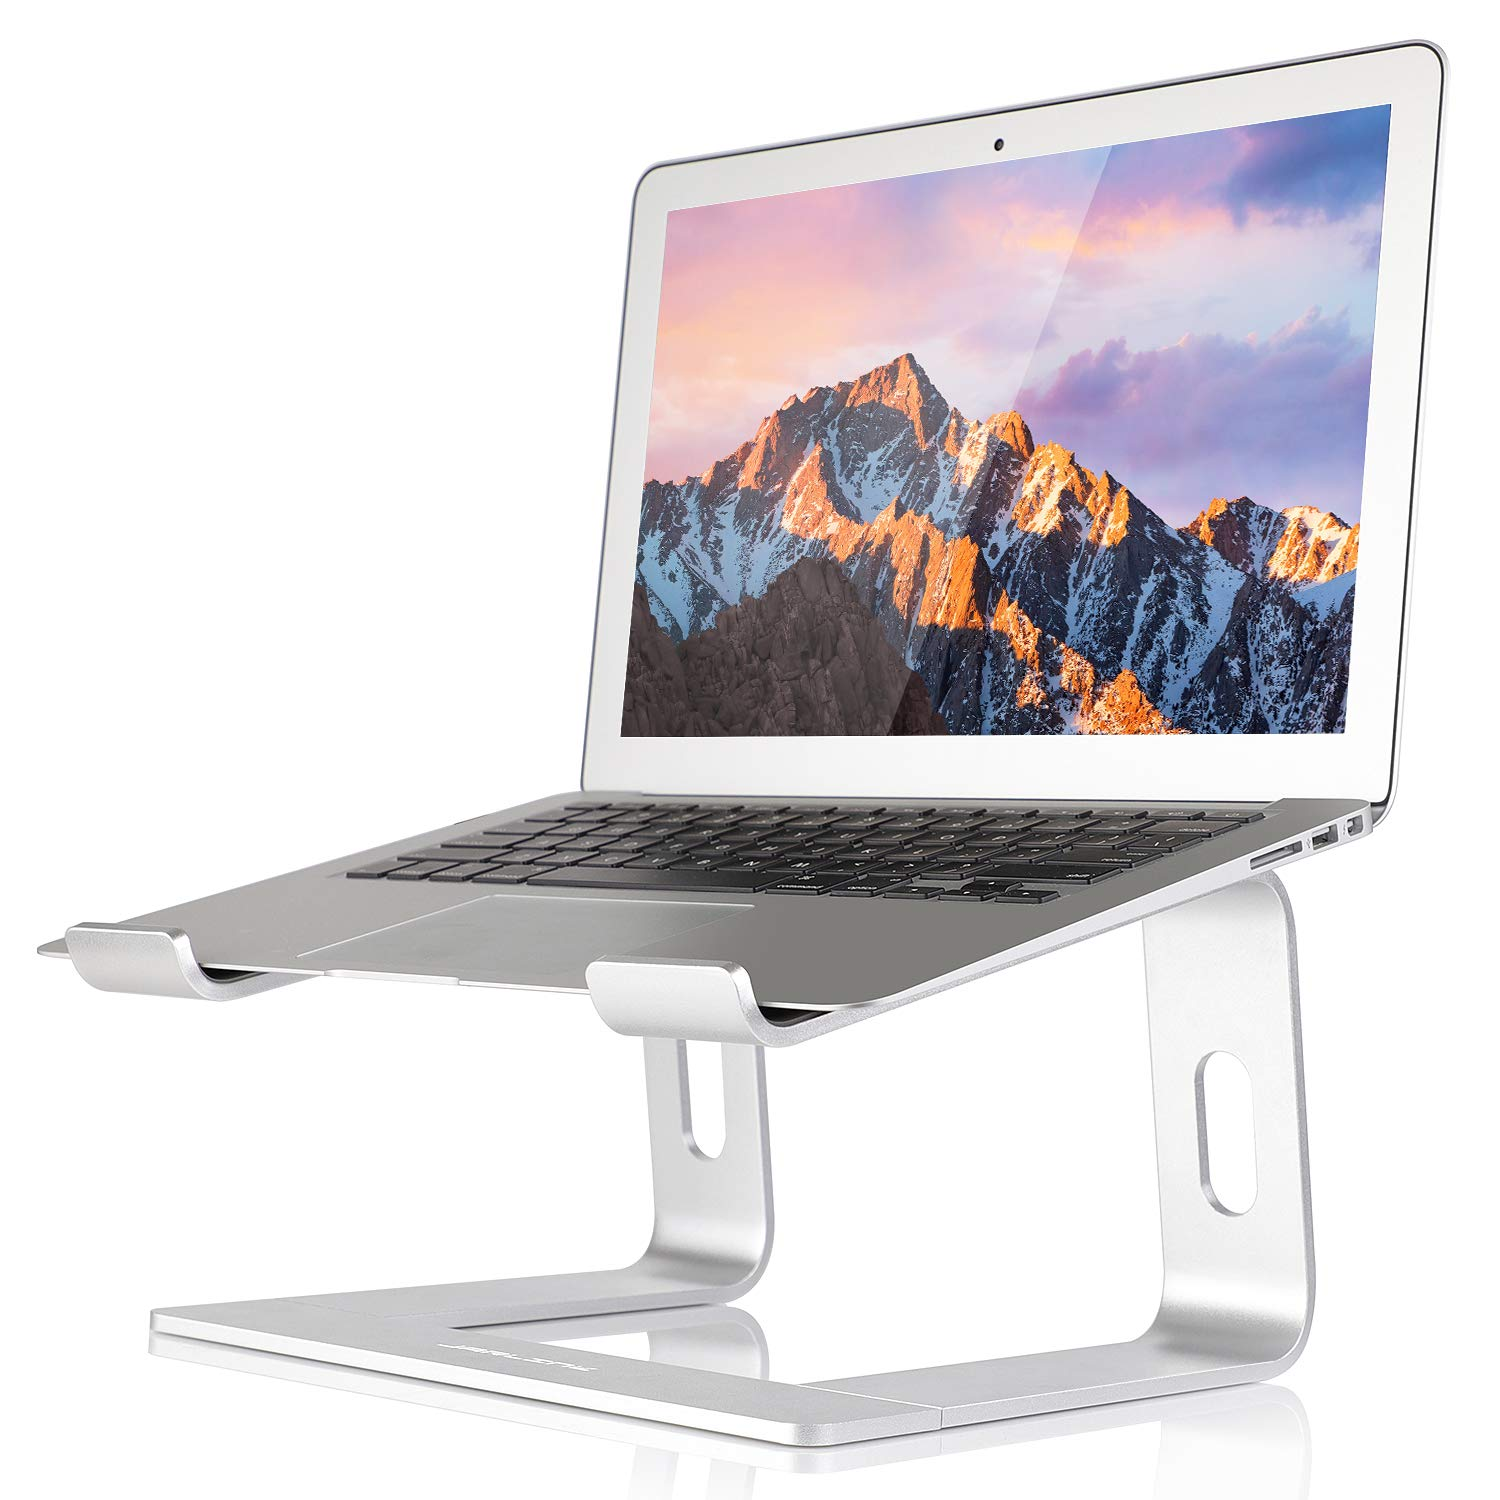 JARLINK Aluminum Laptop Stand, Ergonomic Detachable Laptop Holder Riser Compatible with MacBook Air Pro/Dell XPS/HP/Lenovo (up to 15.6 inches), Silver by JARLINK